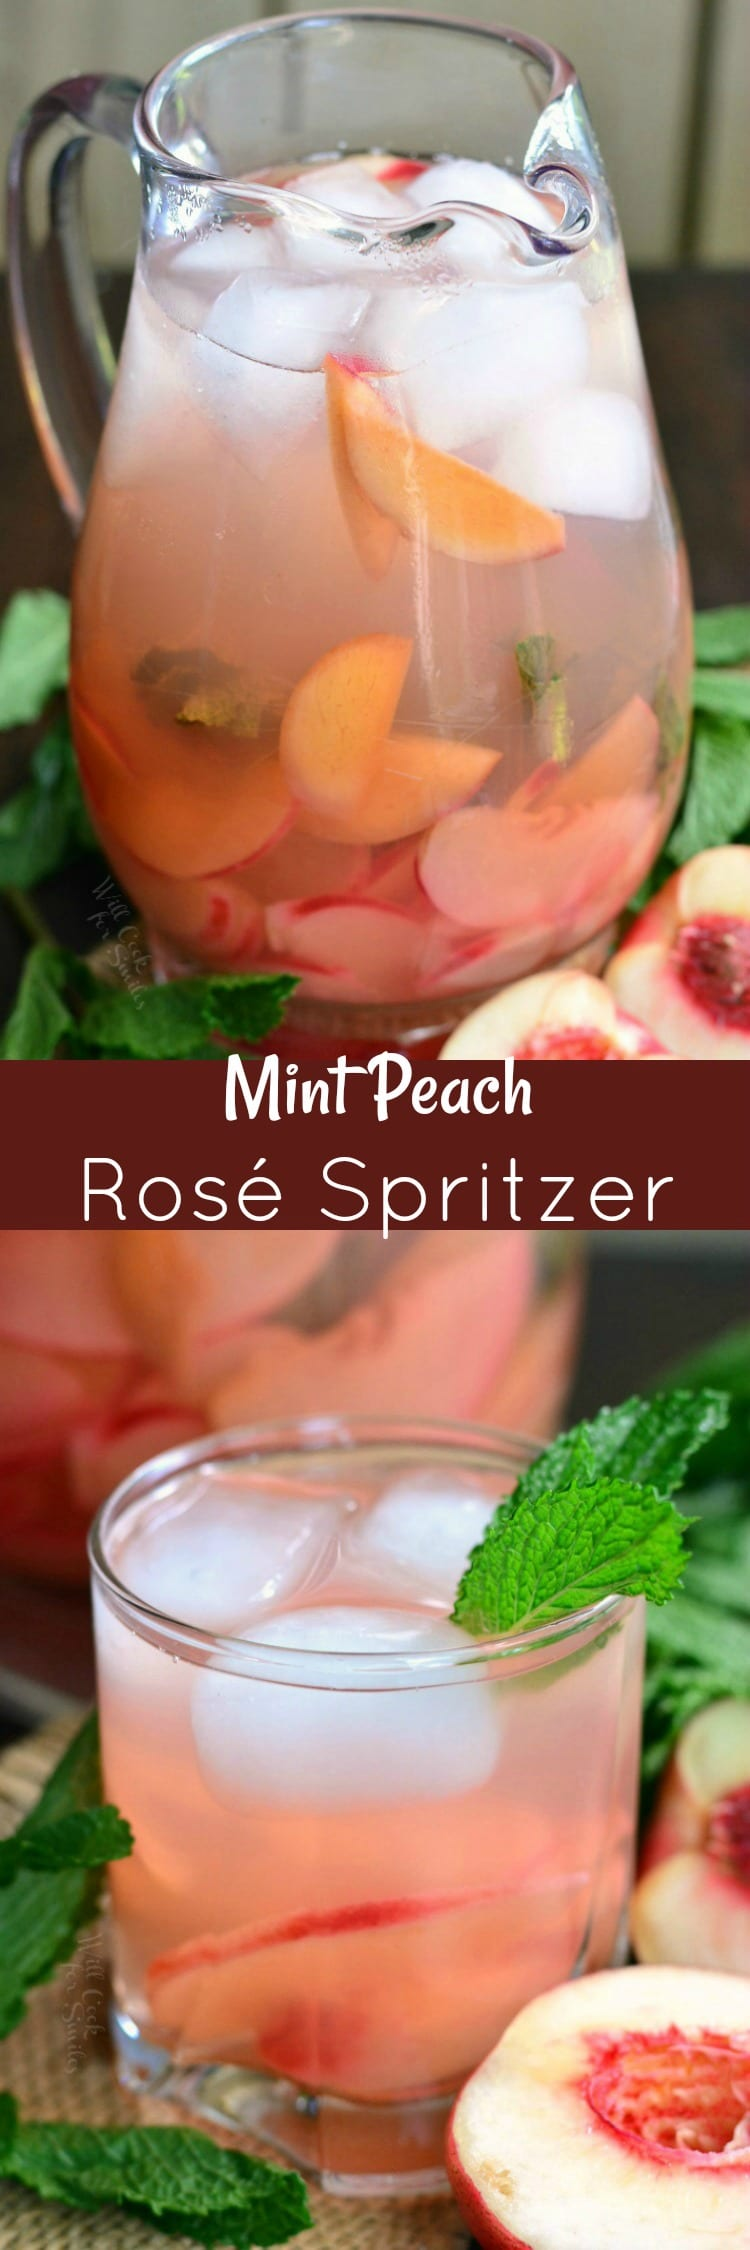 collage top photo mint Peach Rose Spritzer in a pitcher bottom glass of spritzer